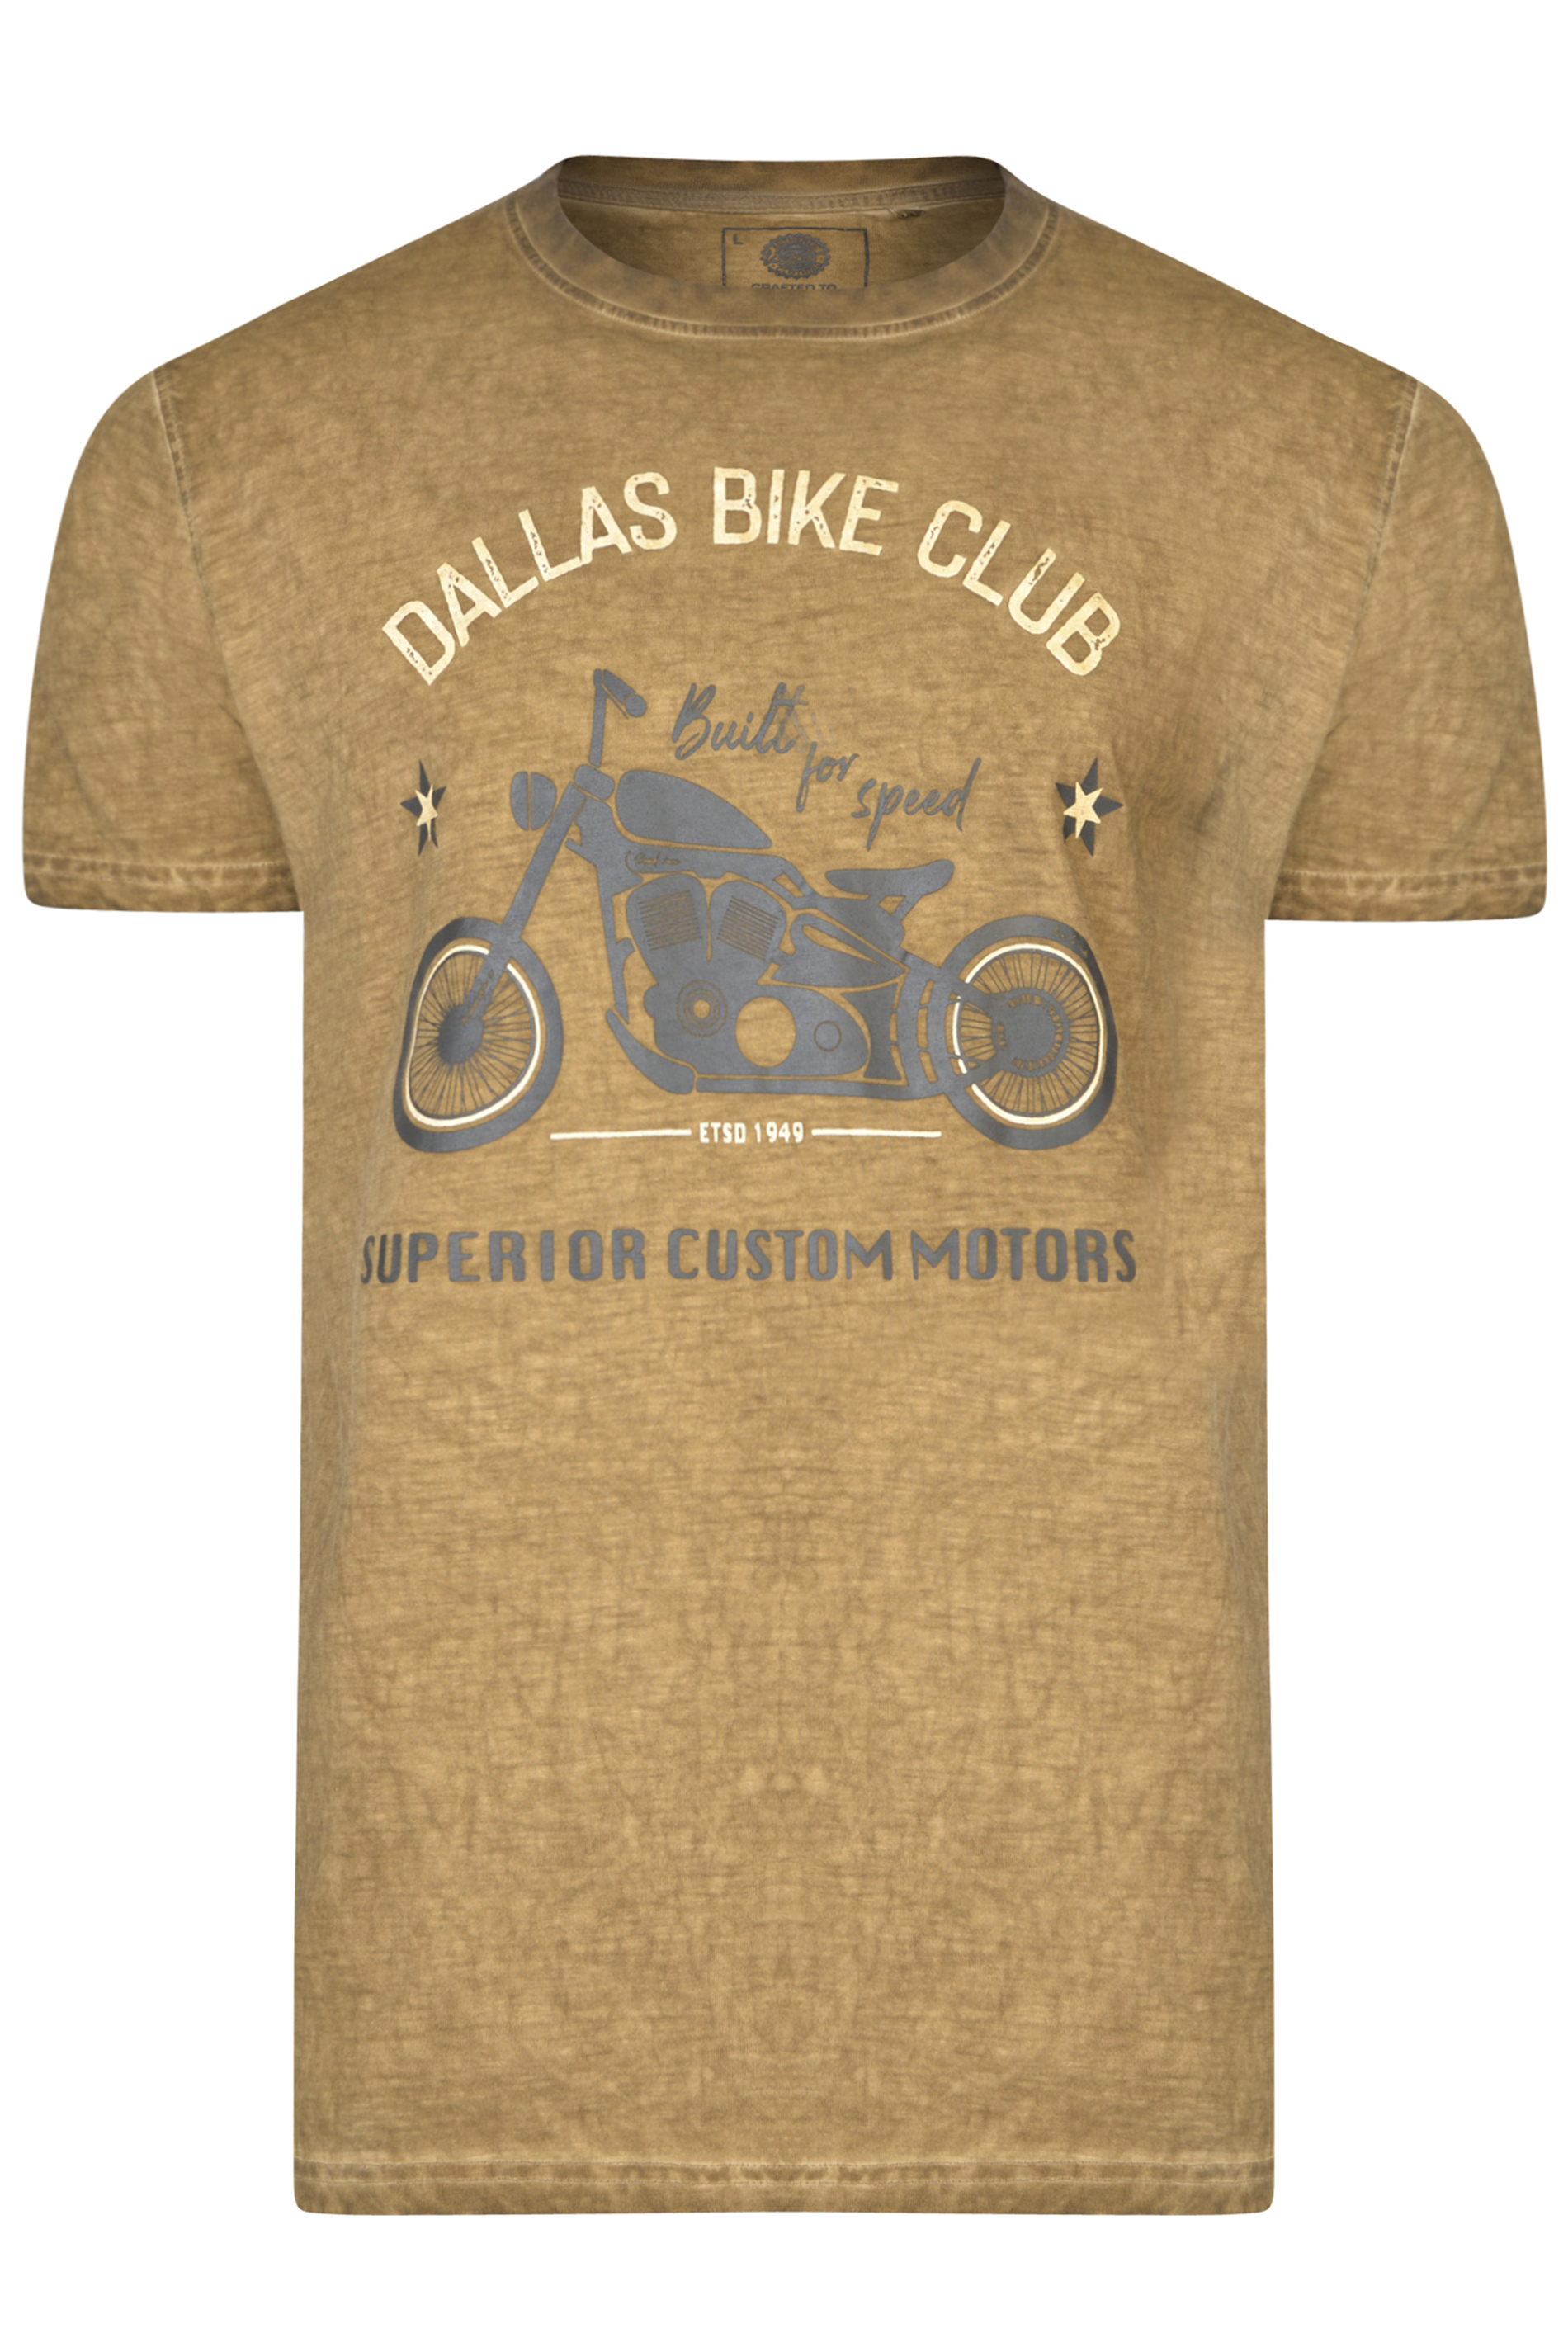 KAM Khaki 'Dallas Bike Club' T-Shirt